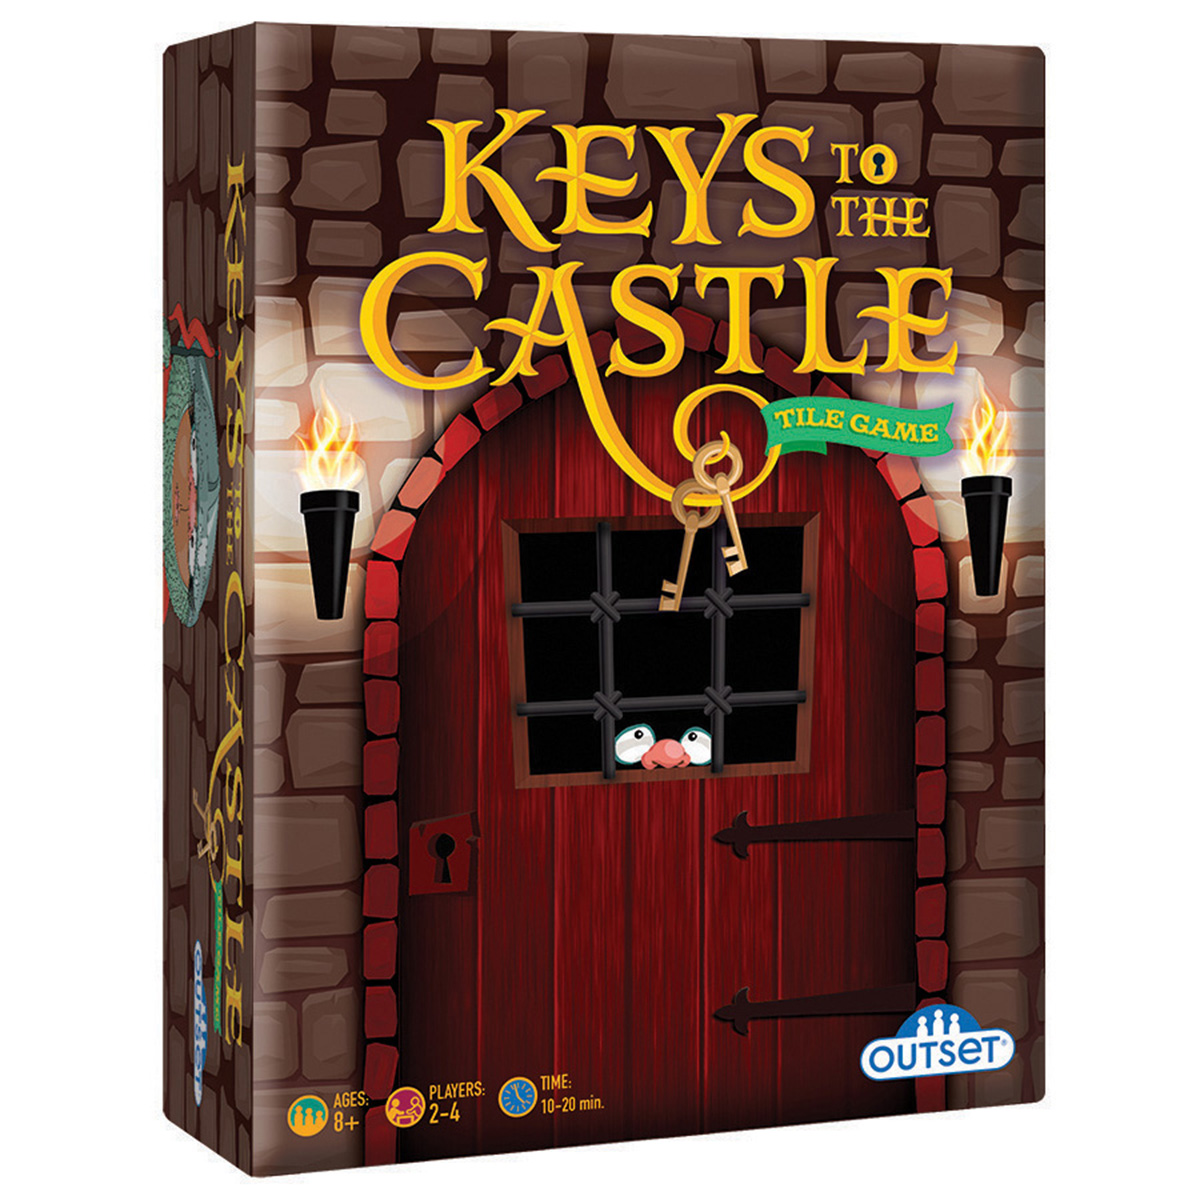 Keys to the Castle: The Game